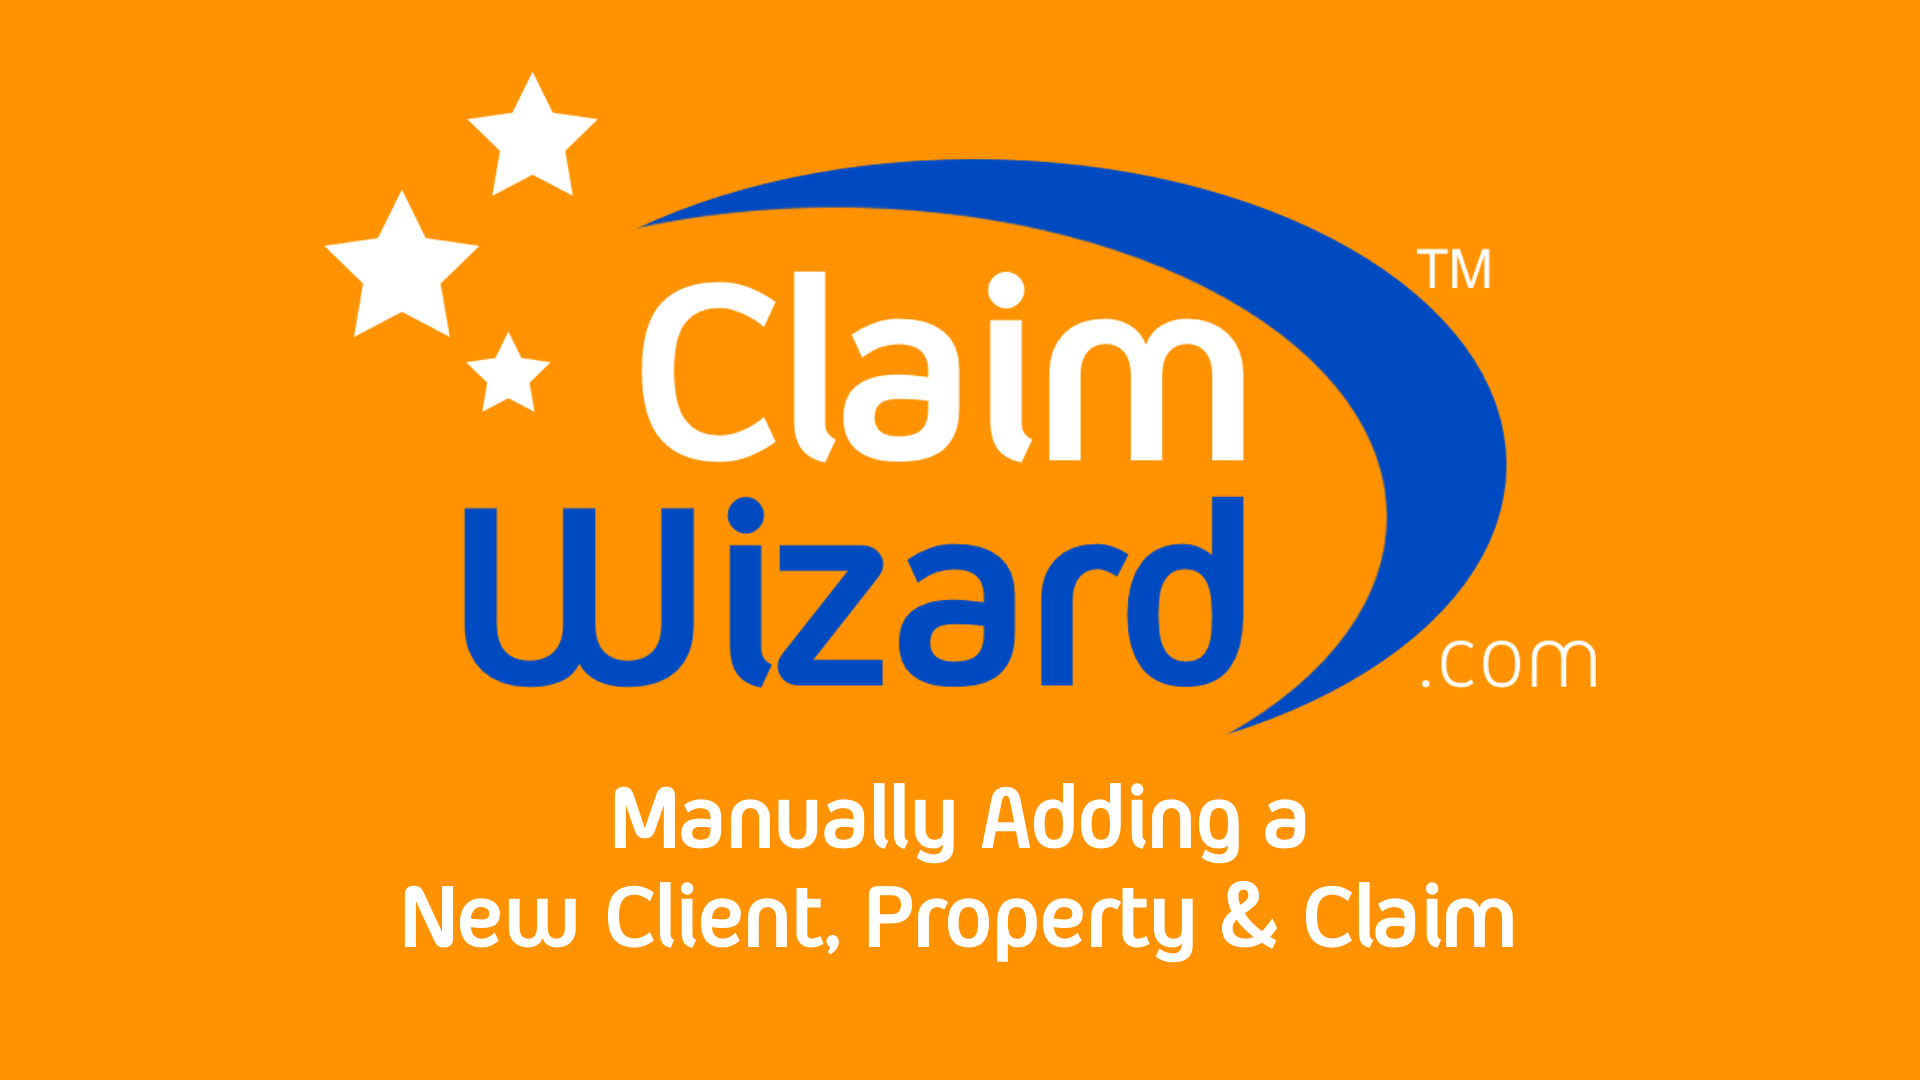 Manually Adding a New Client, Property and Claim